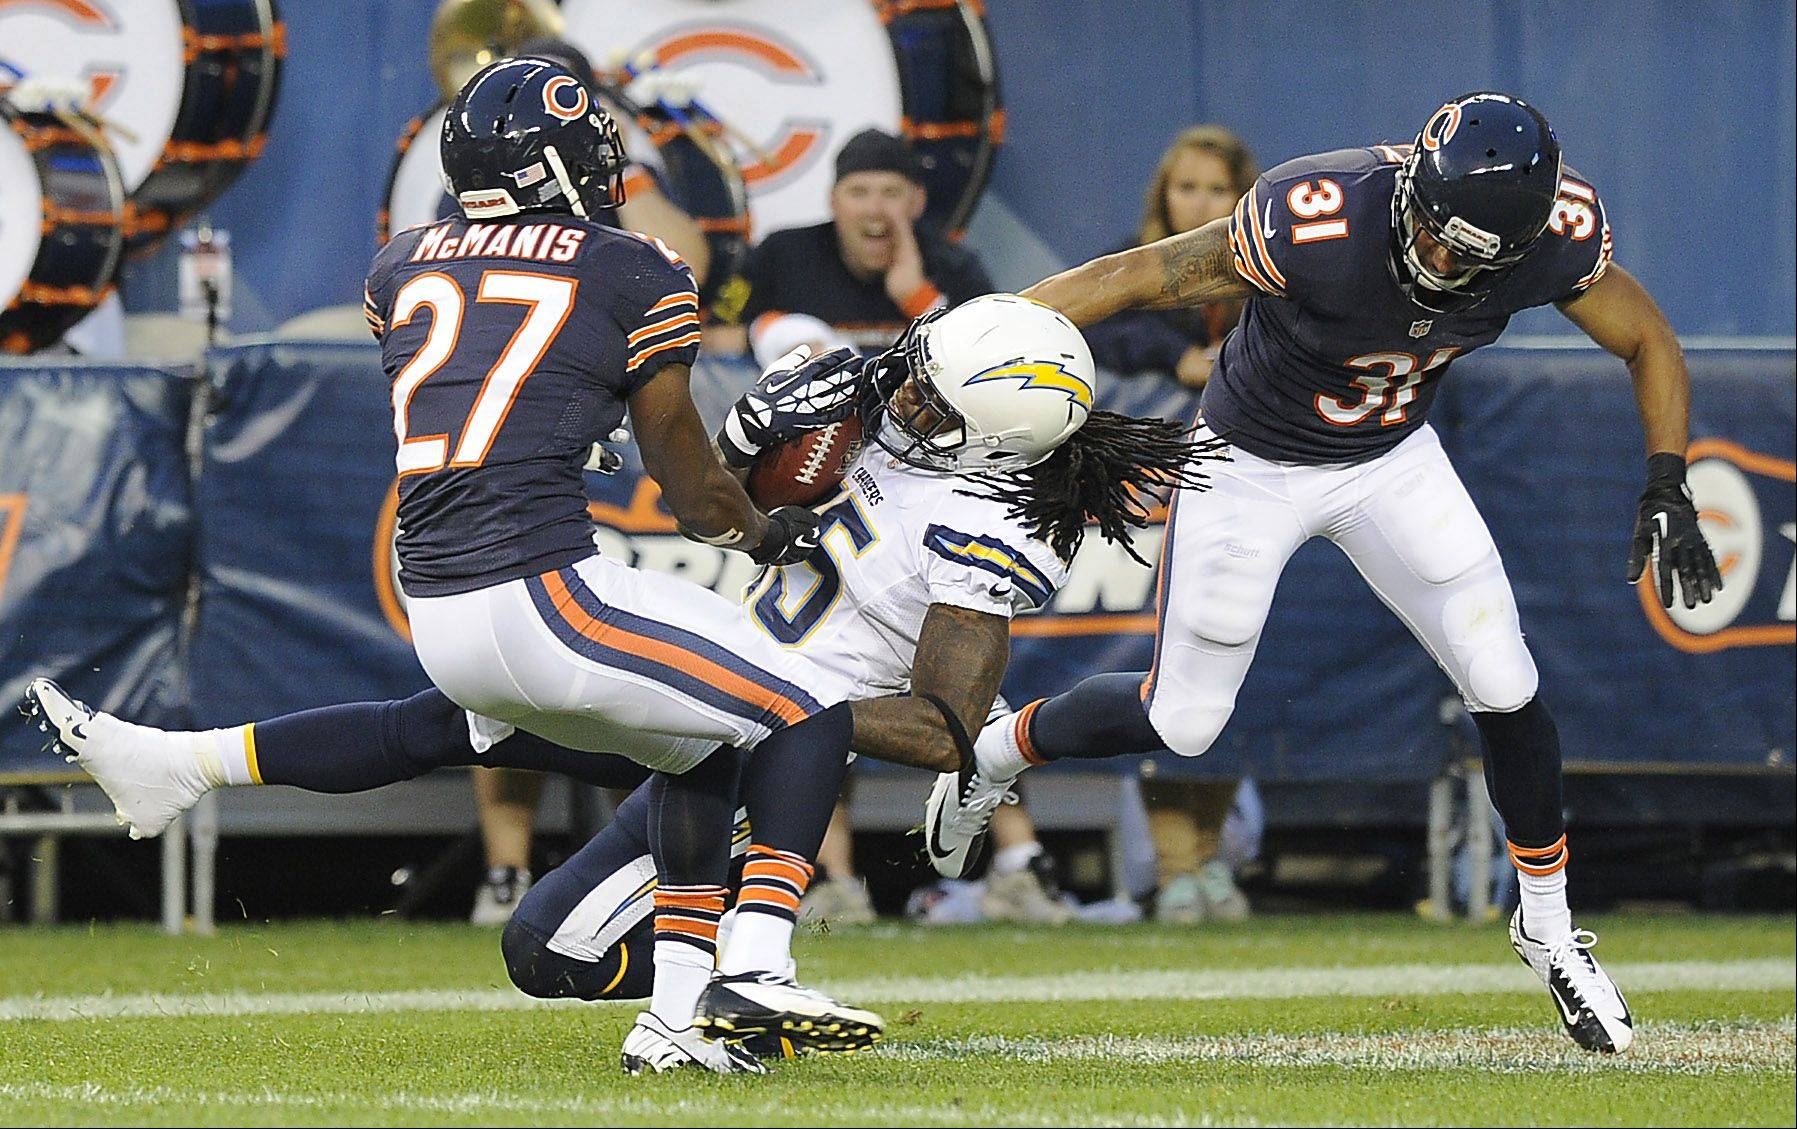 Bears defenders Isaiah Frey, right, and Sherrick McManis team up to stop San Diego's Richard Goodman in the first half Thursday night at Soldier Field. The Bears' first-team defense gave up just 72 yards in four possessions.